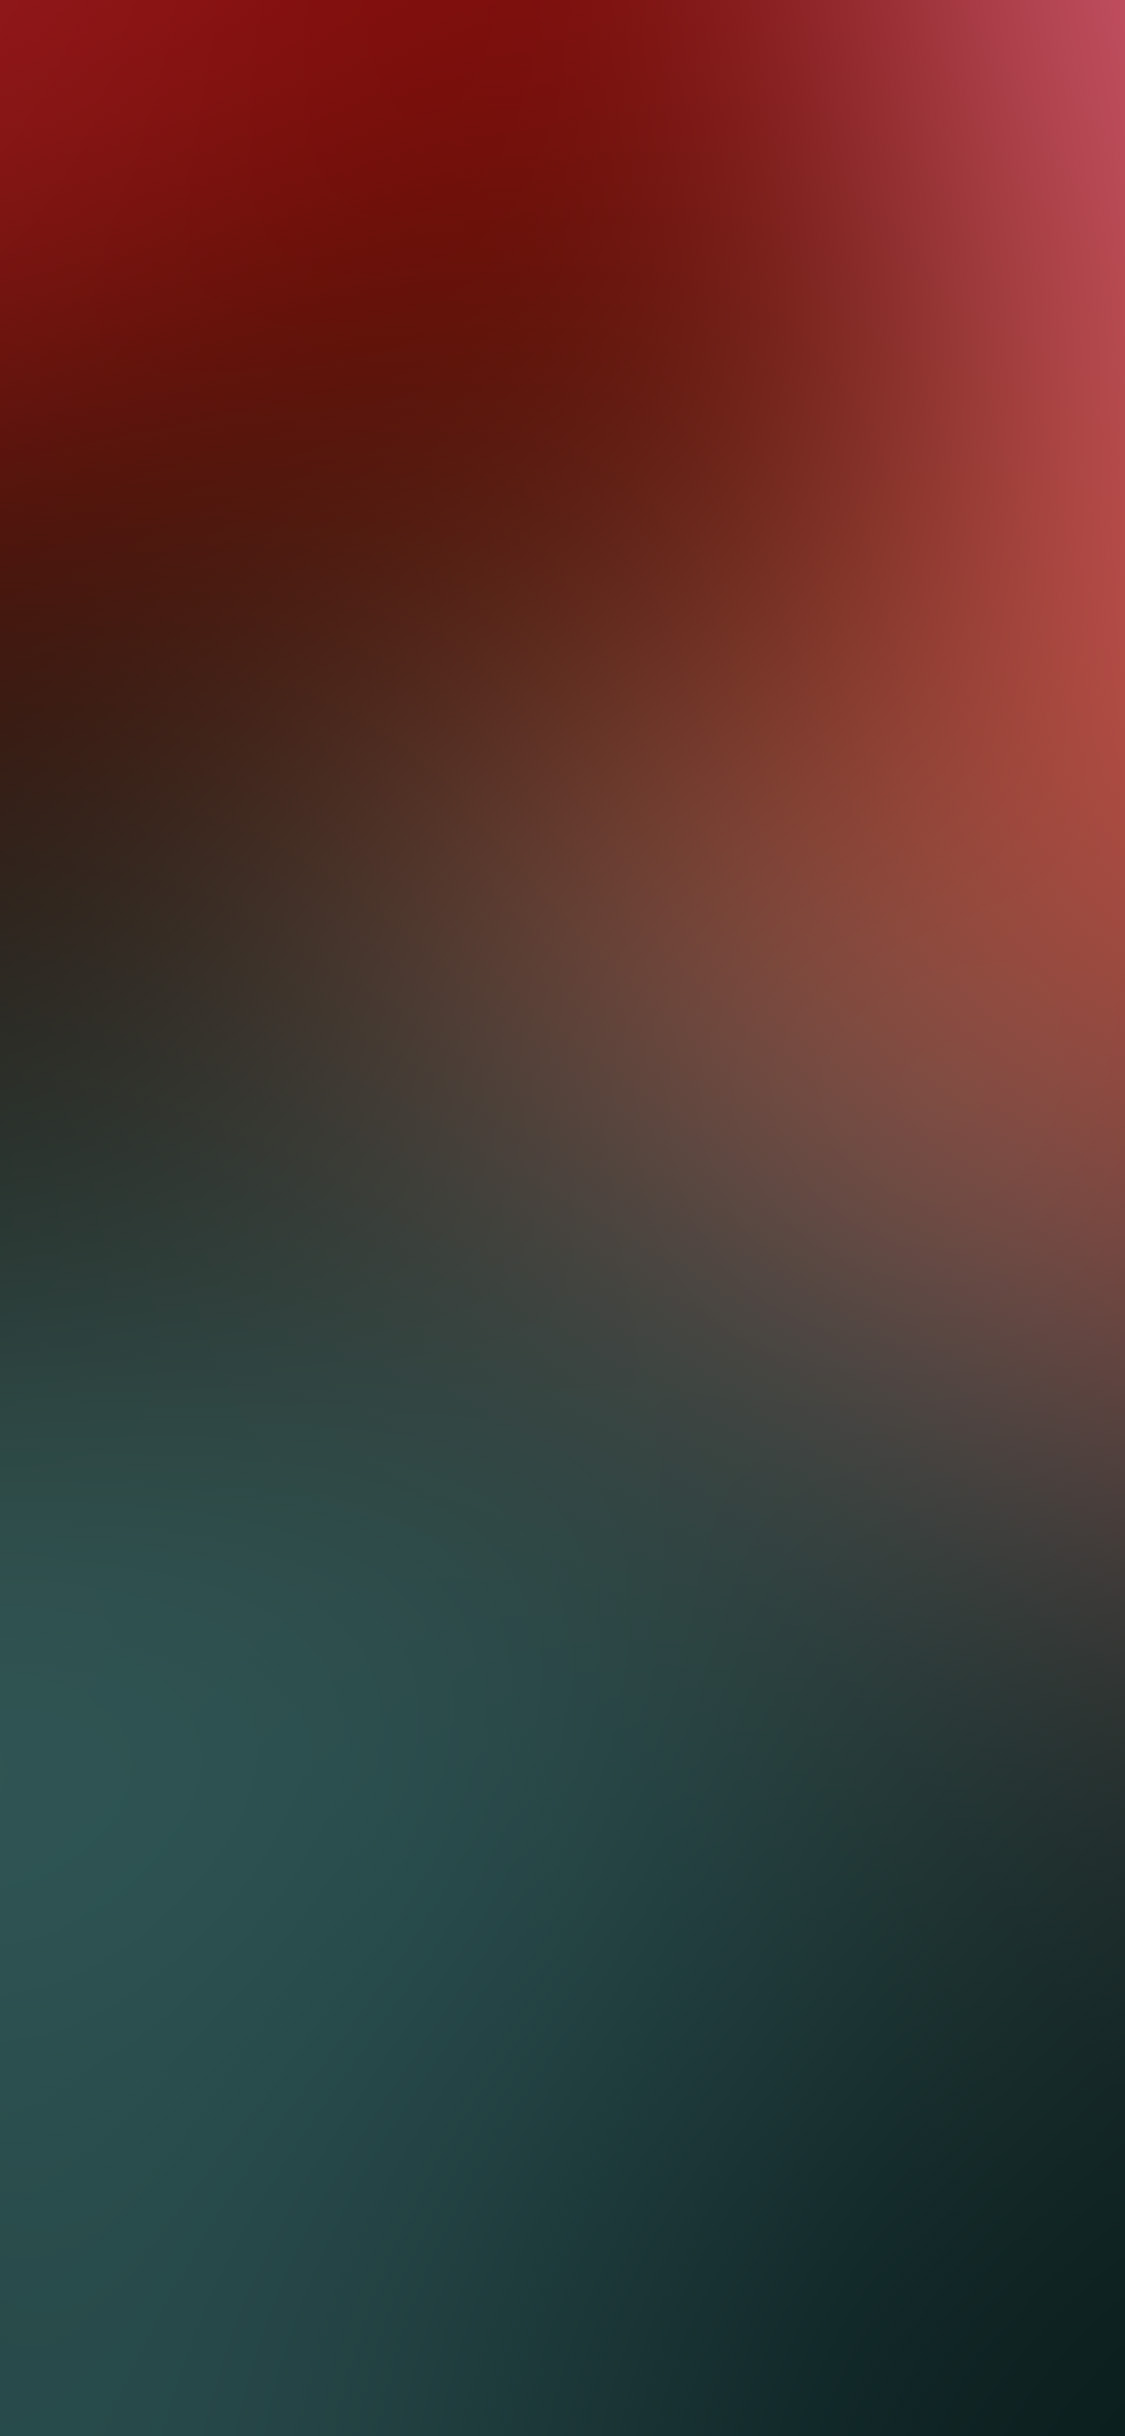 iPhonexpapers.com-Apple-iPhone-wallpaper-sn27-red-earth-blur-gradation